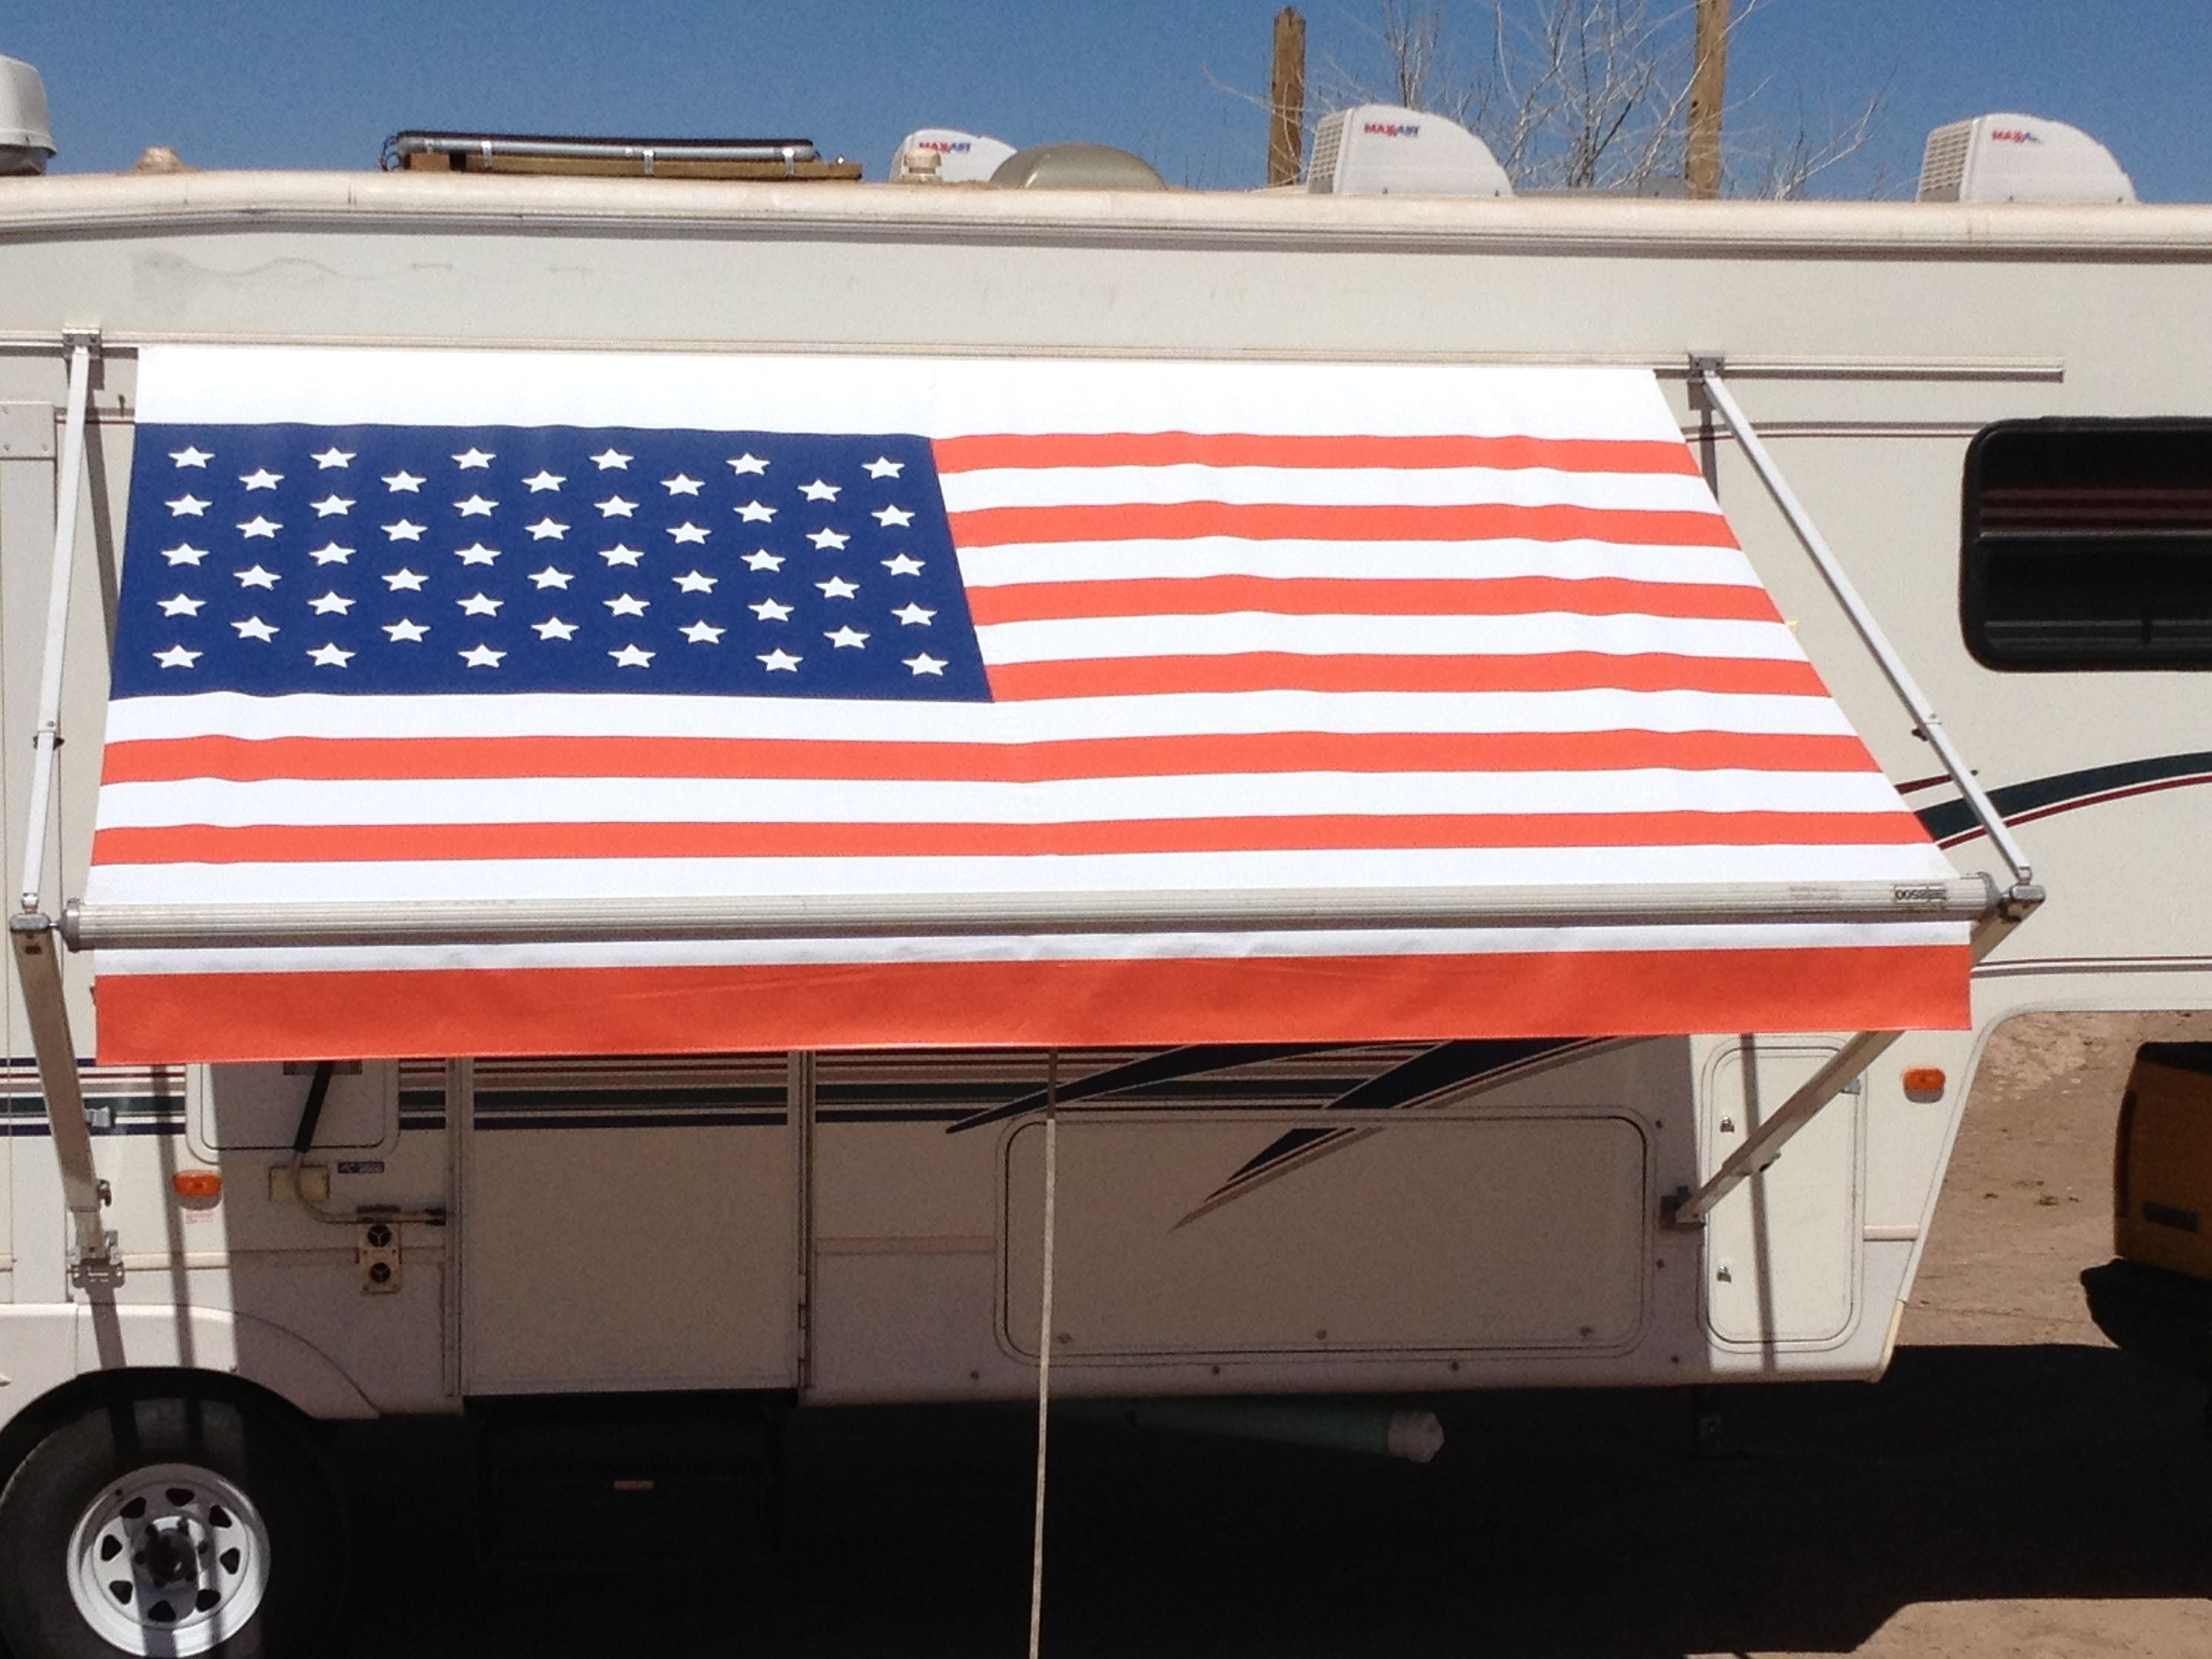 Florida Gators Rv Awning American Flag Rv Awning By Fun In